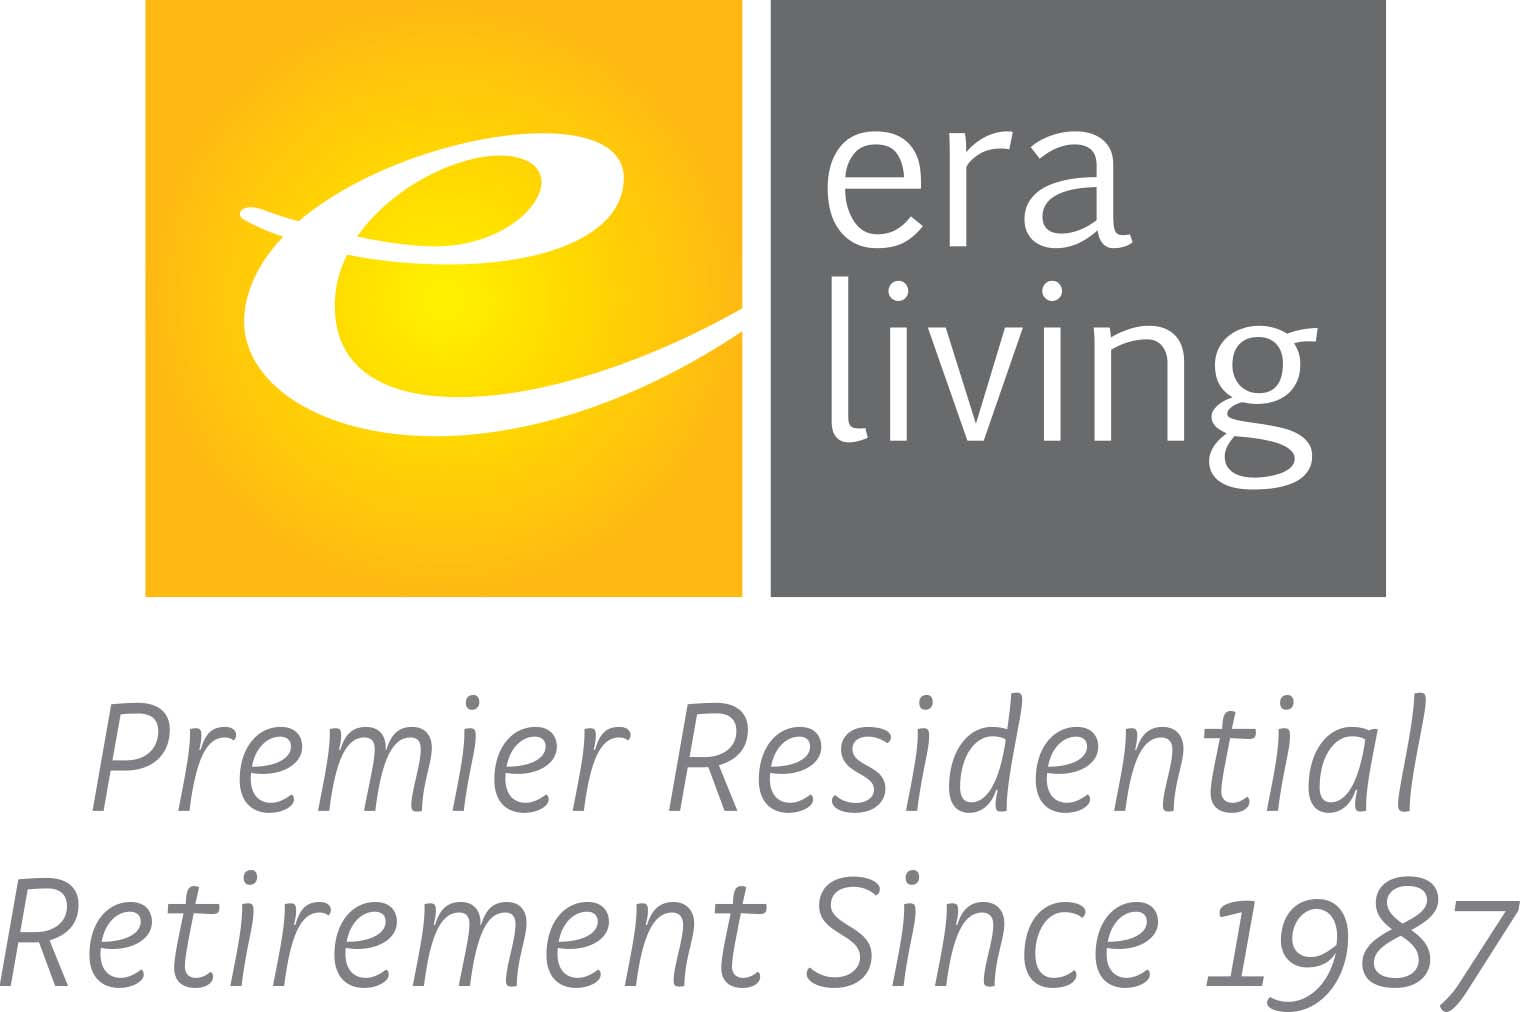 Era Living logo